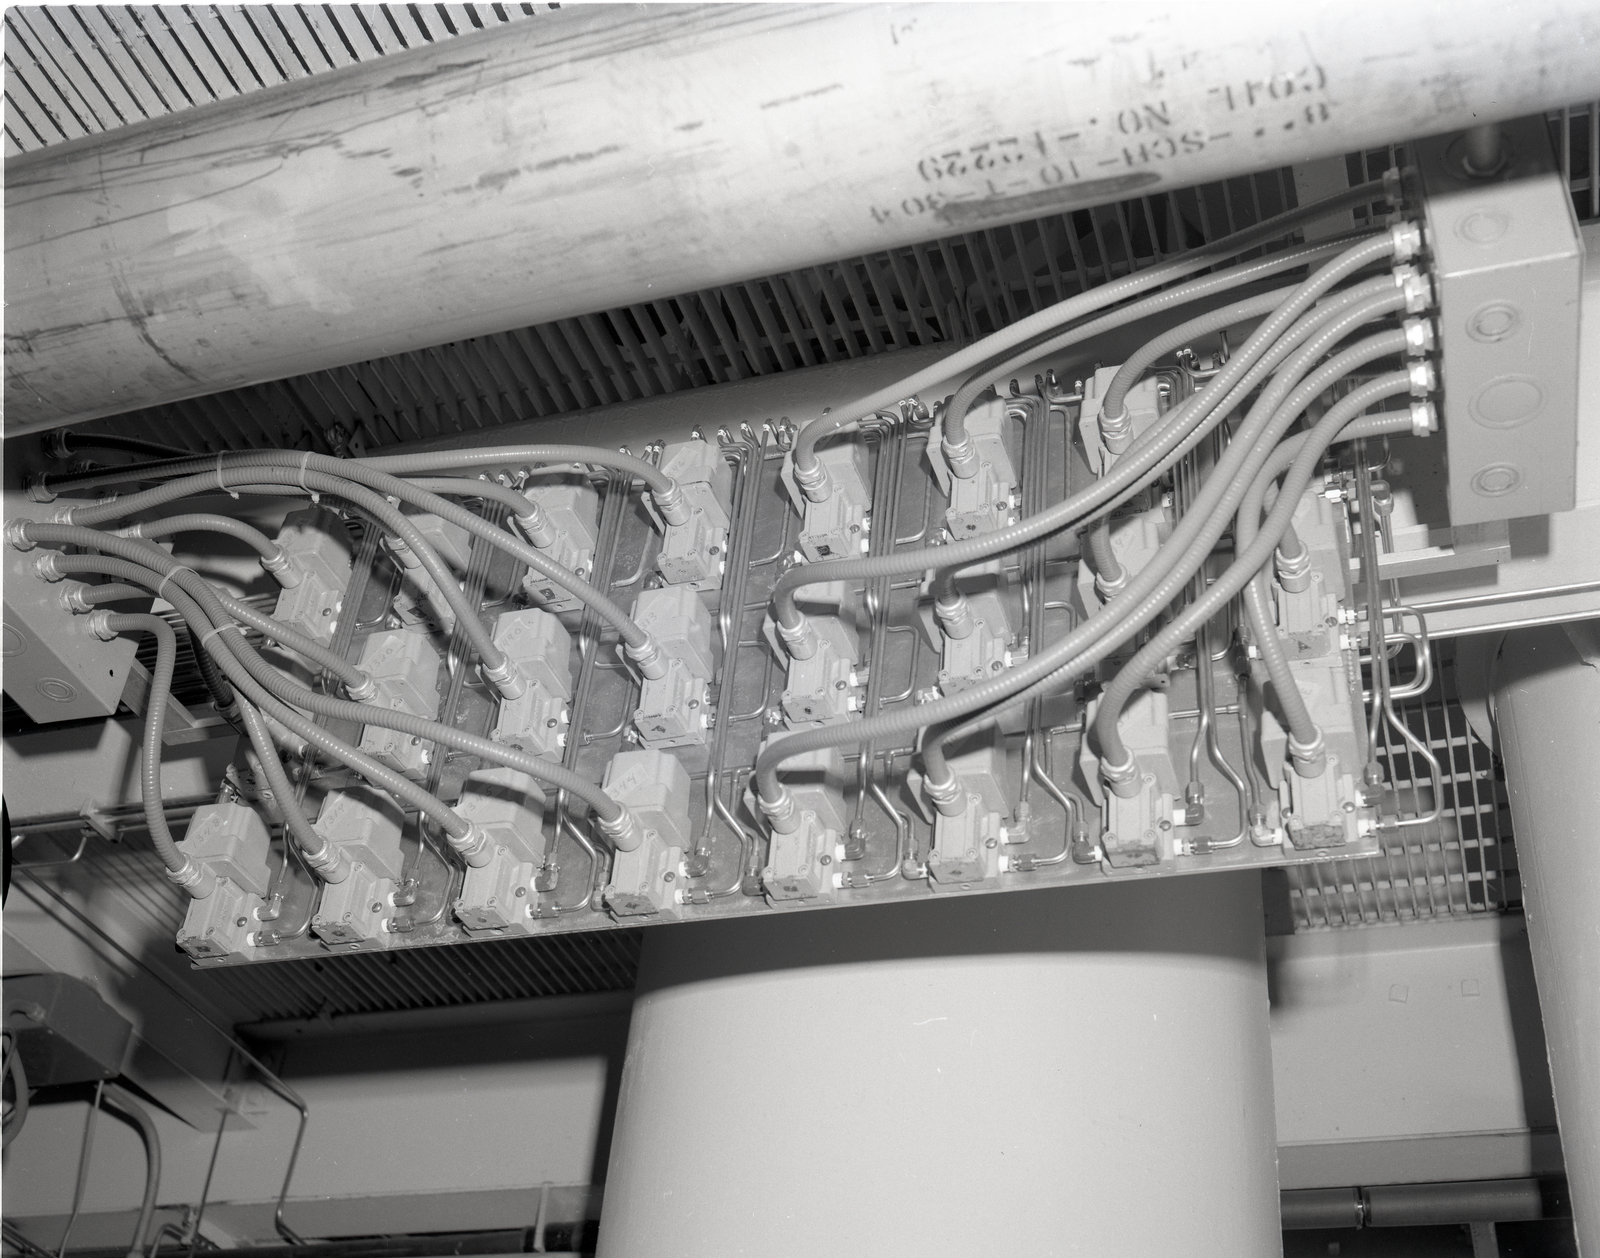 COLD GUARD INSTALLATION IN FUEL PIT OF THE ROCKET ENGINE TEST FACILITIY RETF